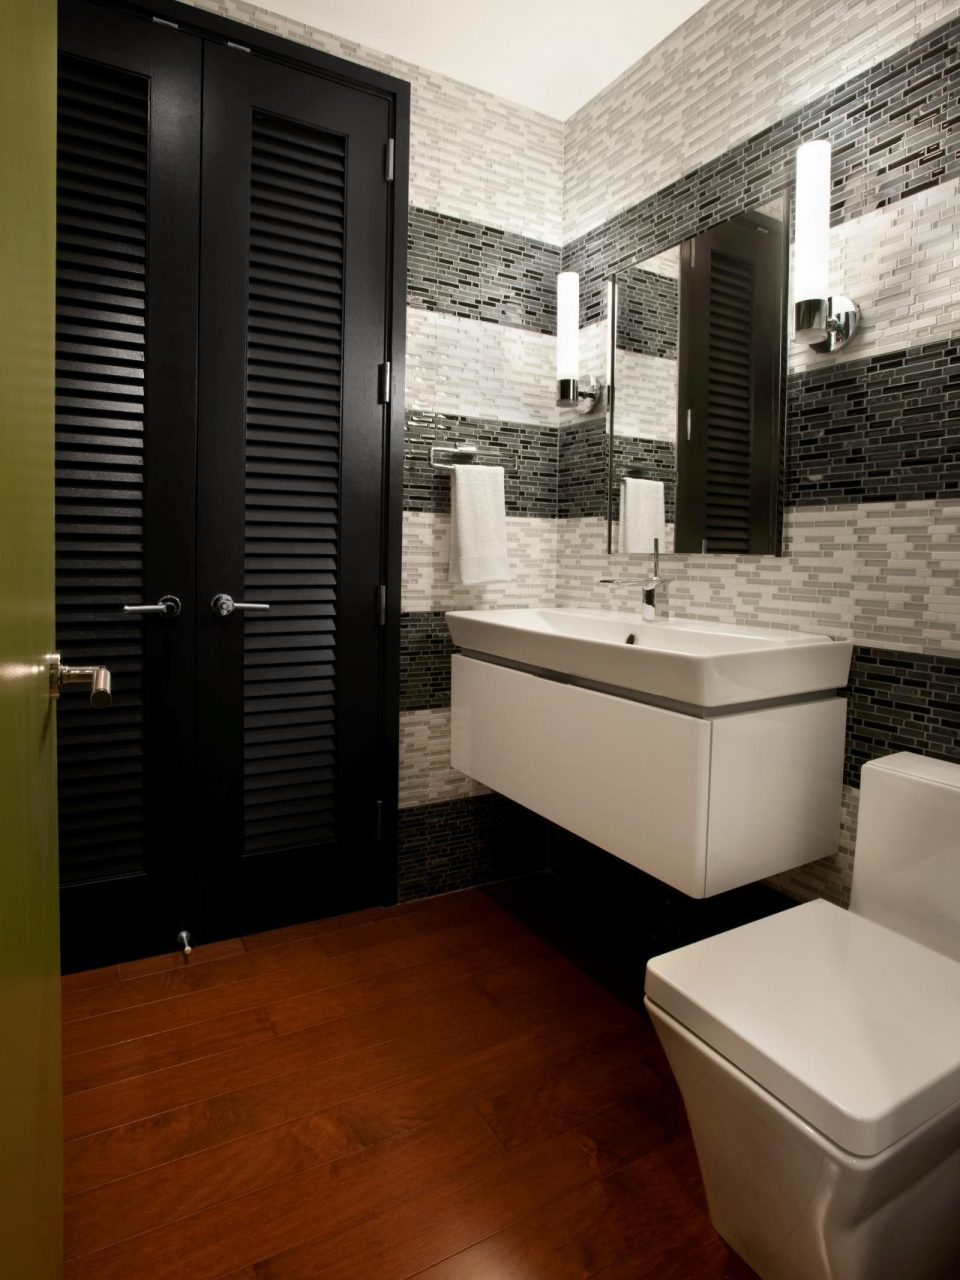 Fascinating Modern Bathroom Design Image Bathroom Design Ideas